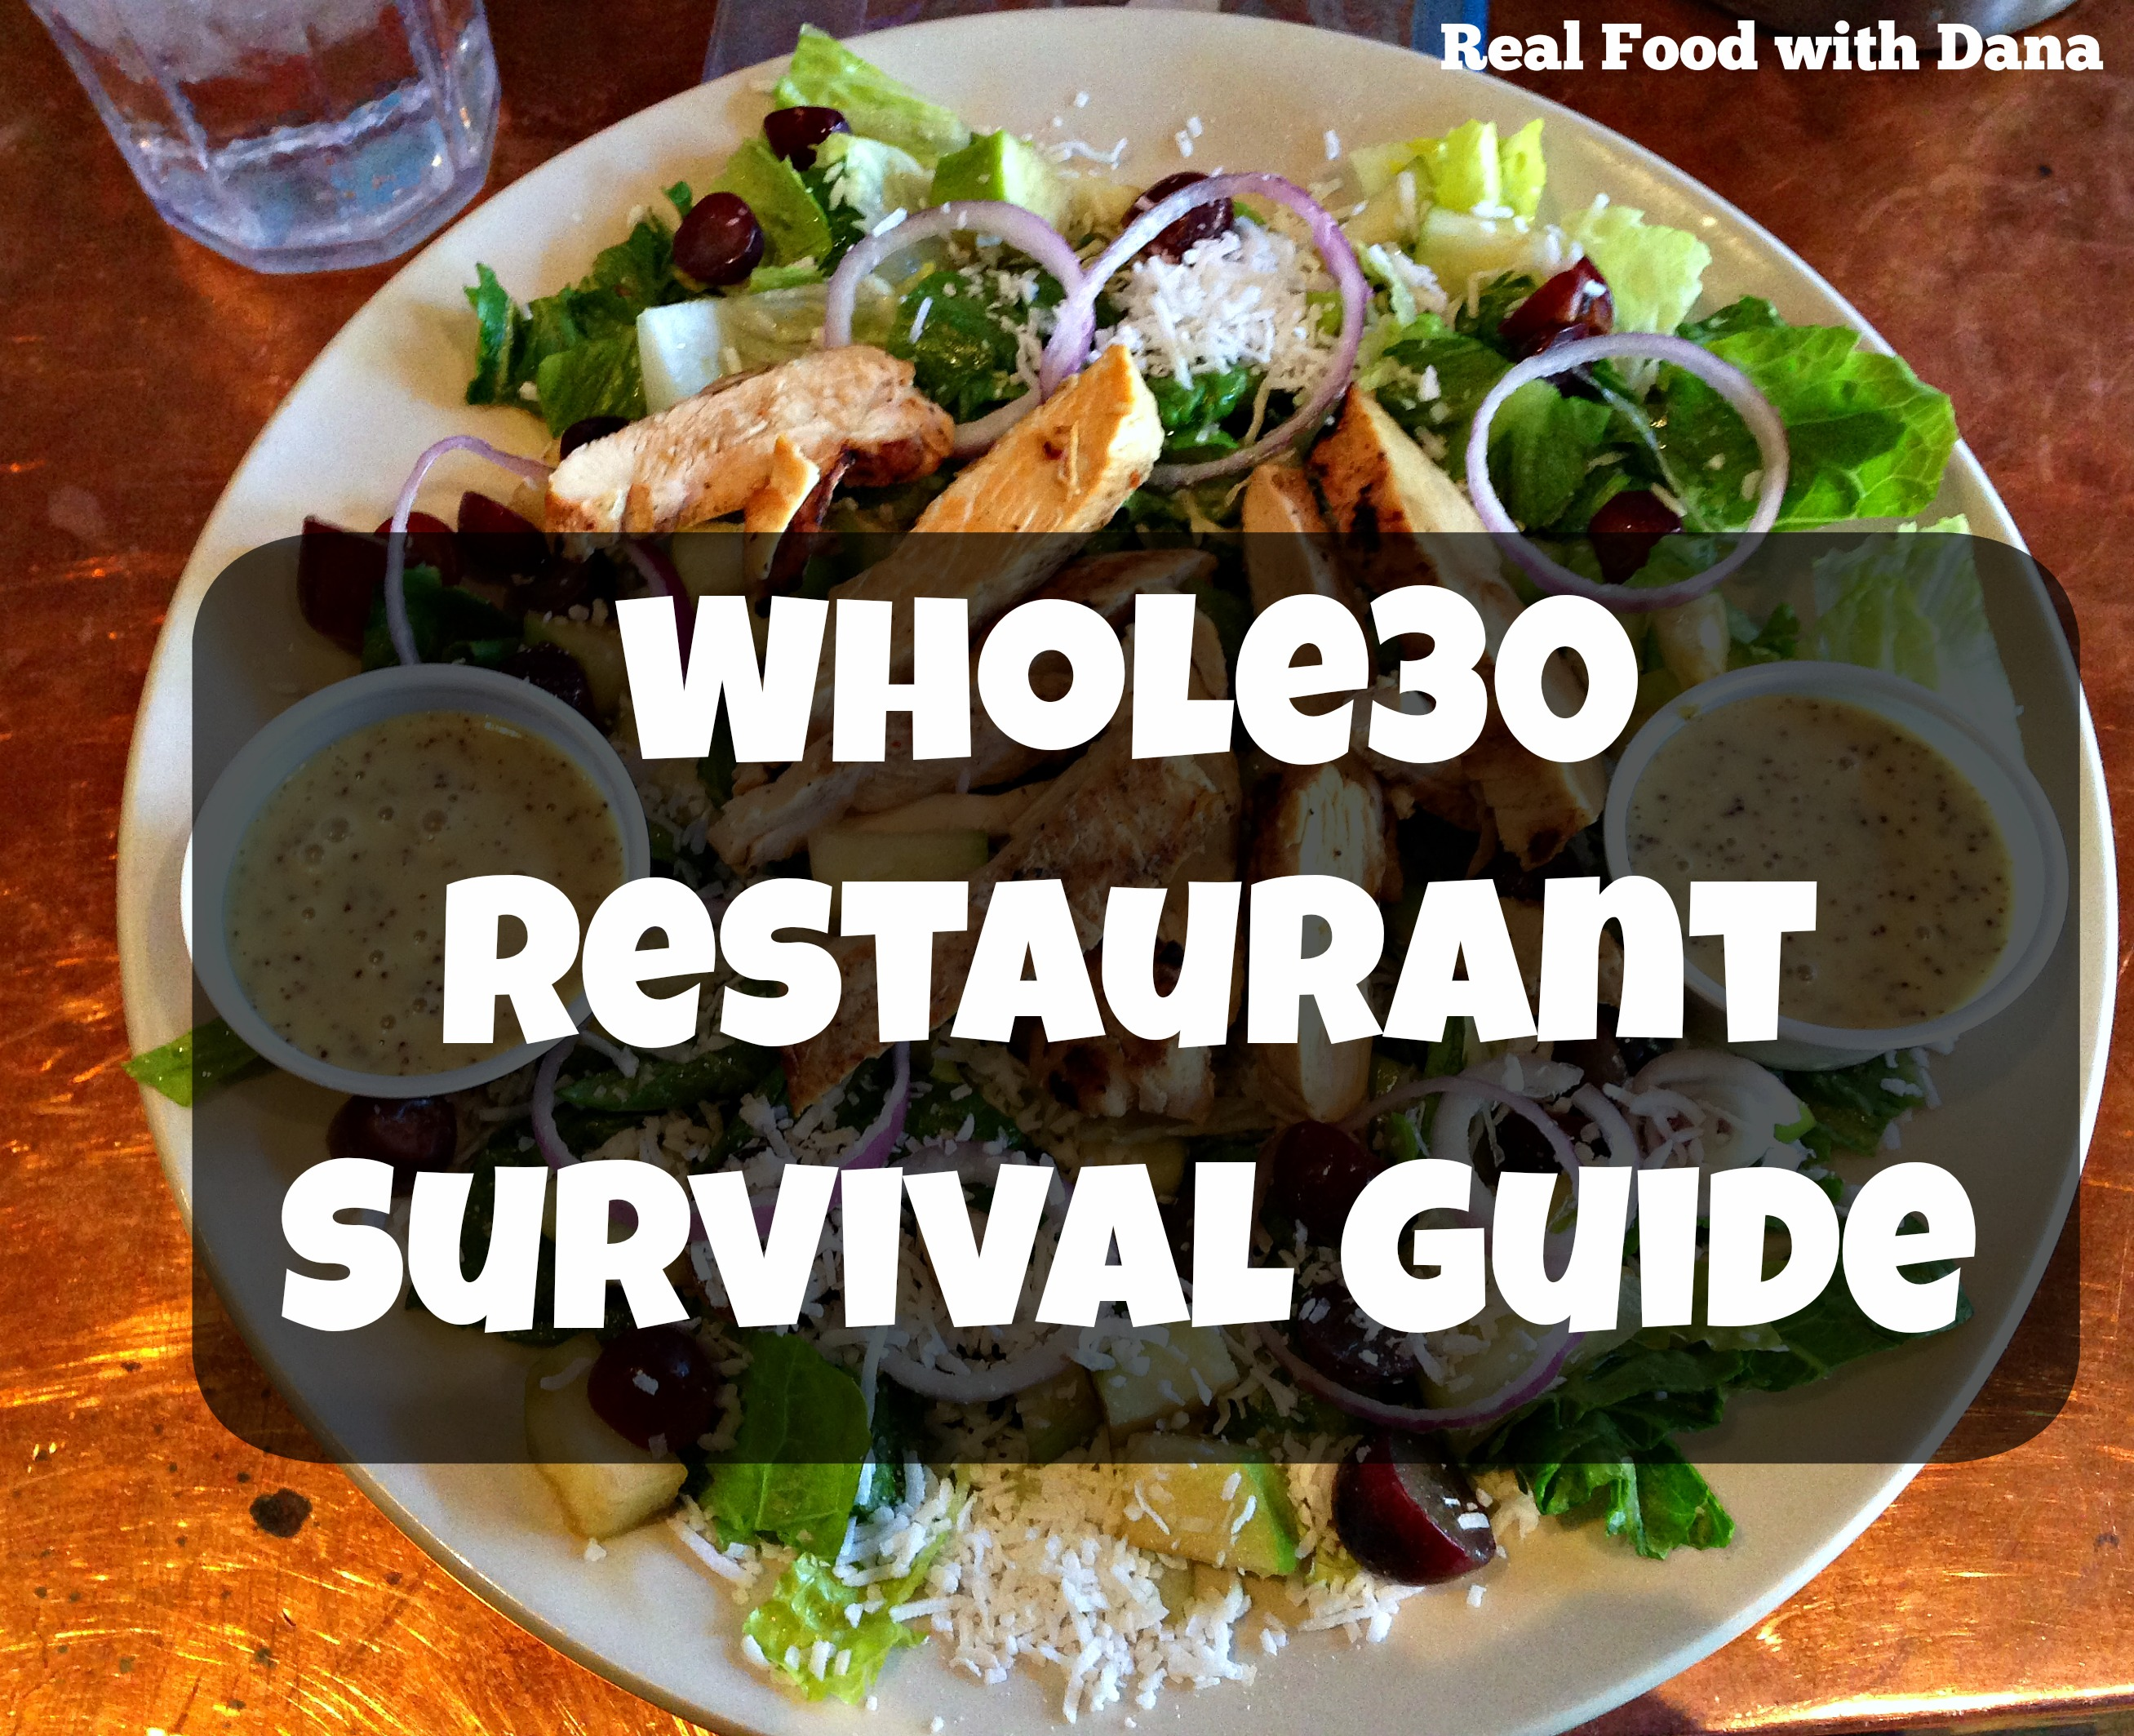 Whole30 restaurant survival guide real food with dana for Restaurant guide